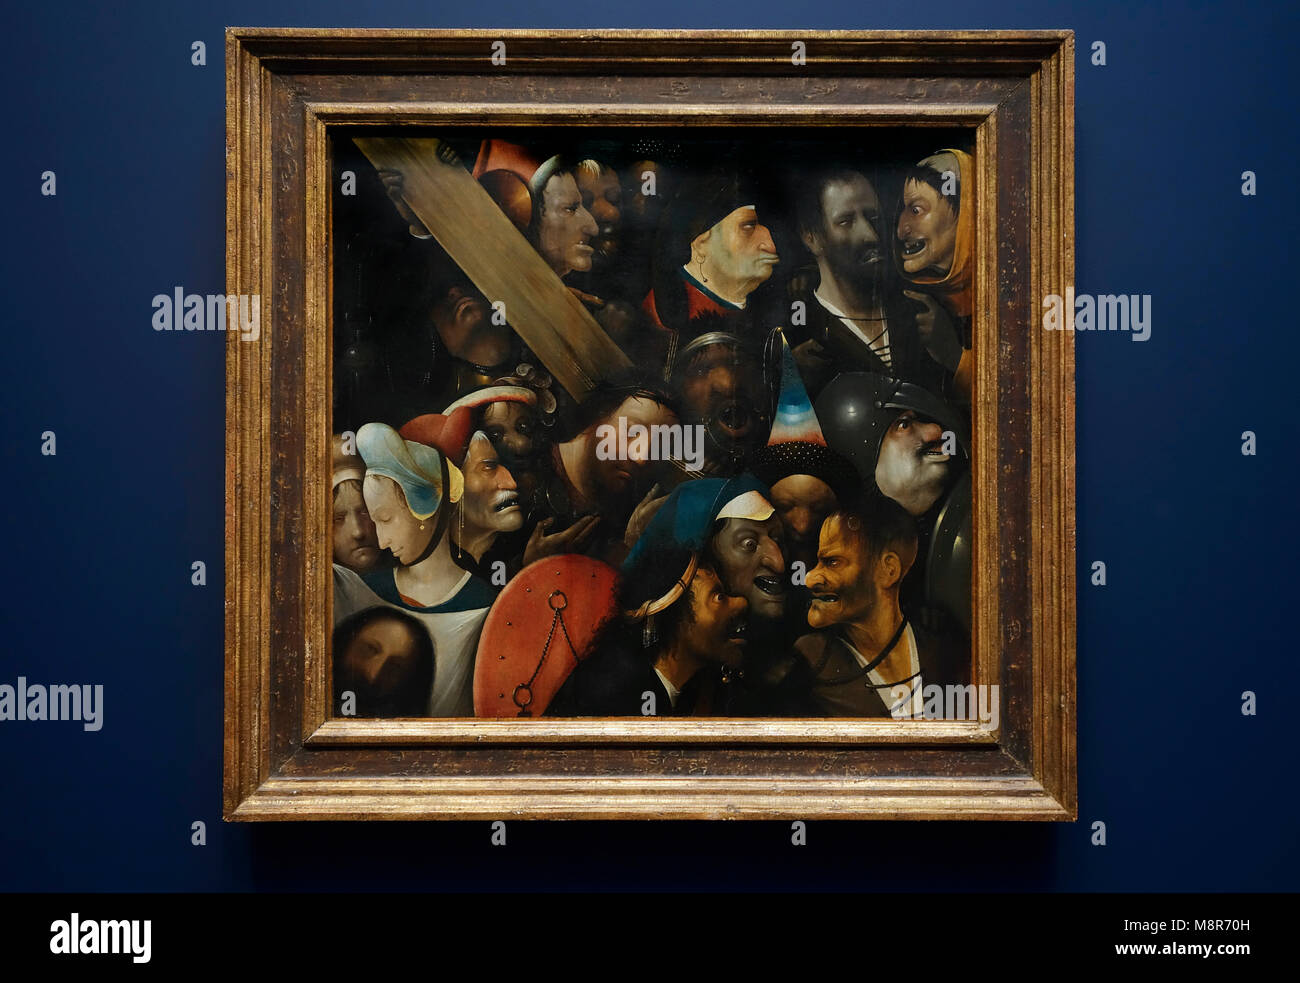 Christ Carrying the Cross, early 16th century Northern Renaissance oil on panel painting by Dutch painter Hieronymus - Stock Image